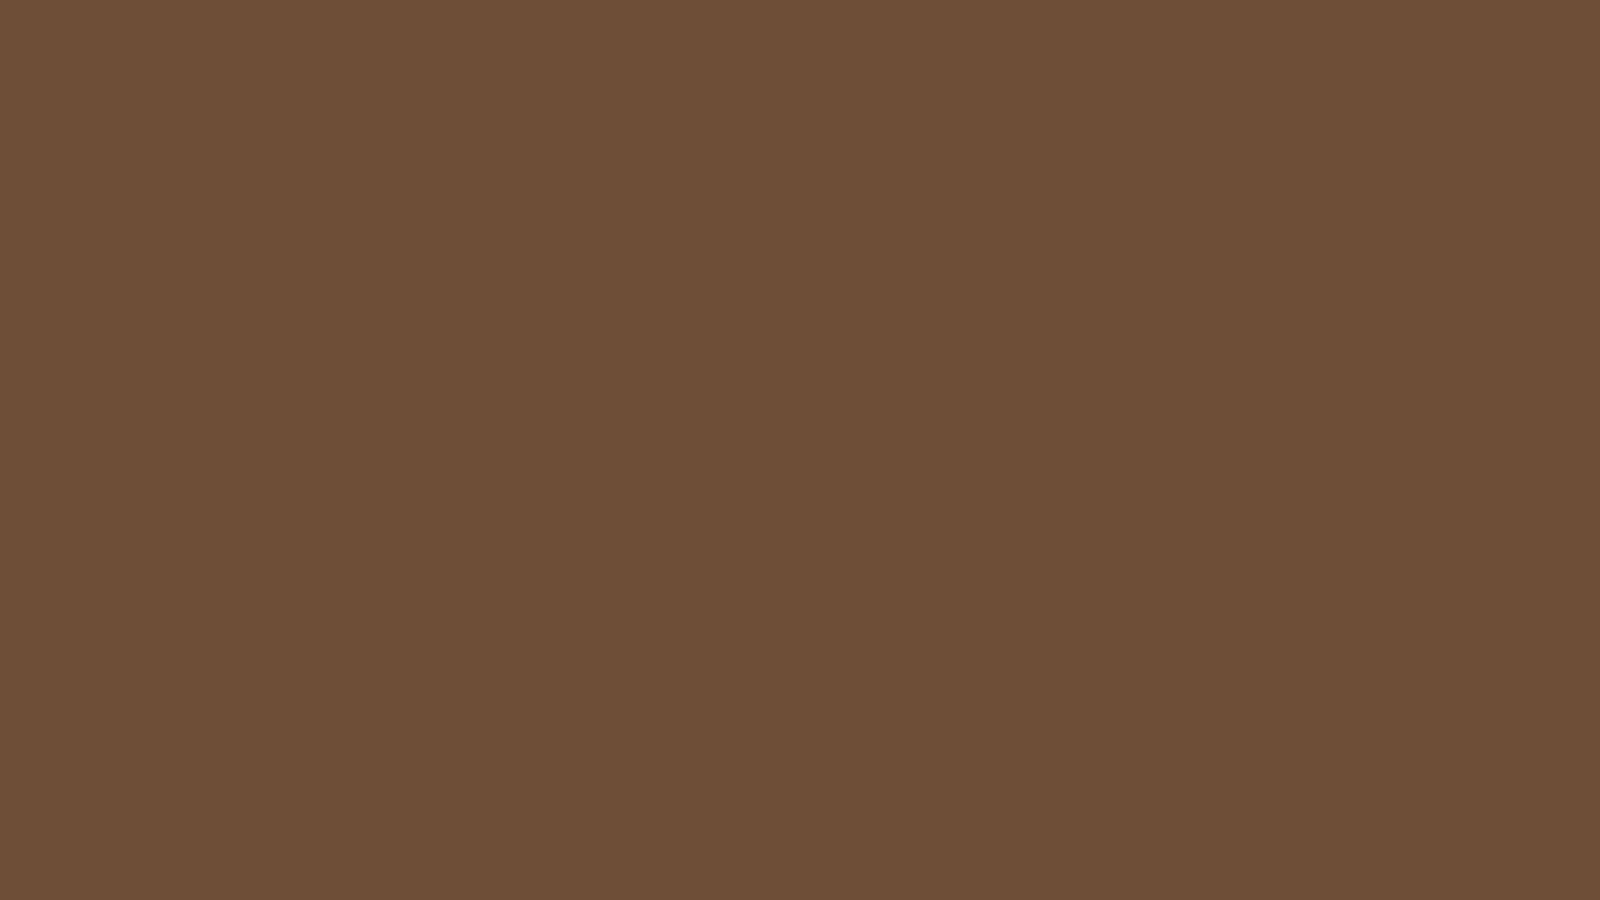 1600x900 Coffee Solid Color Background